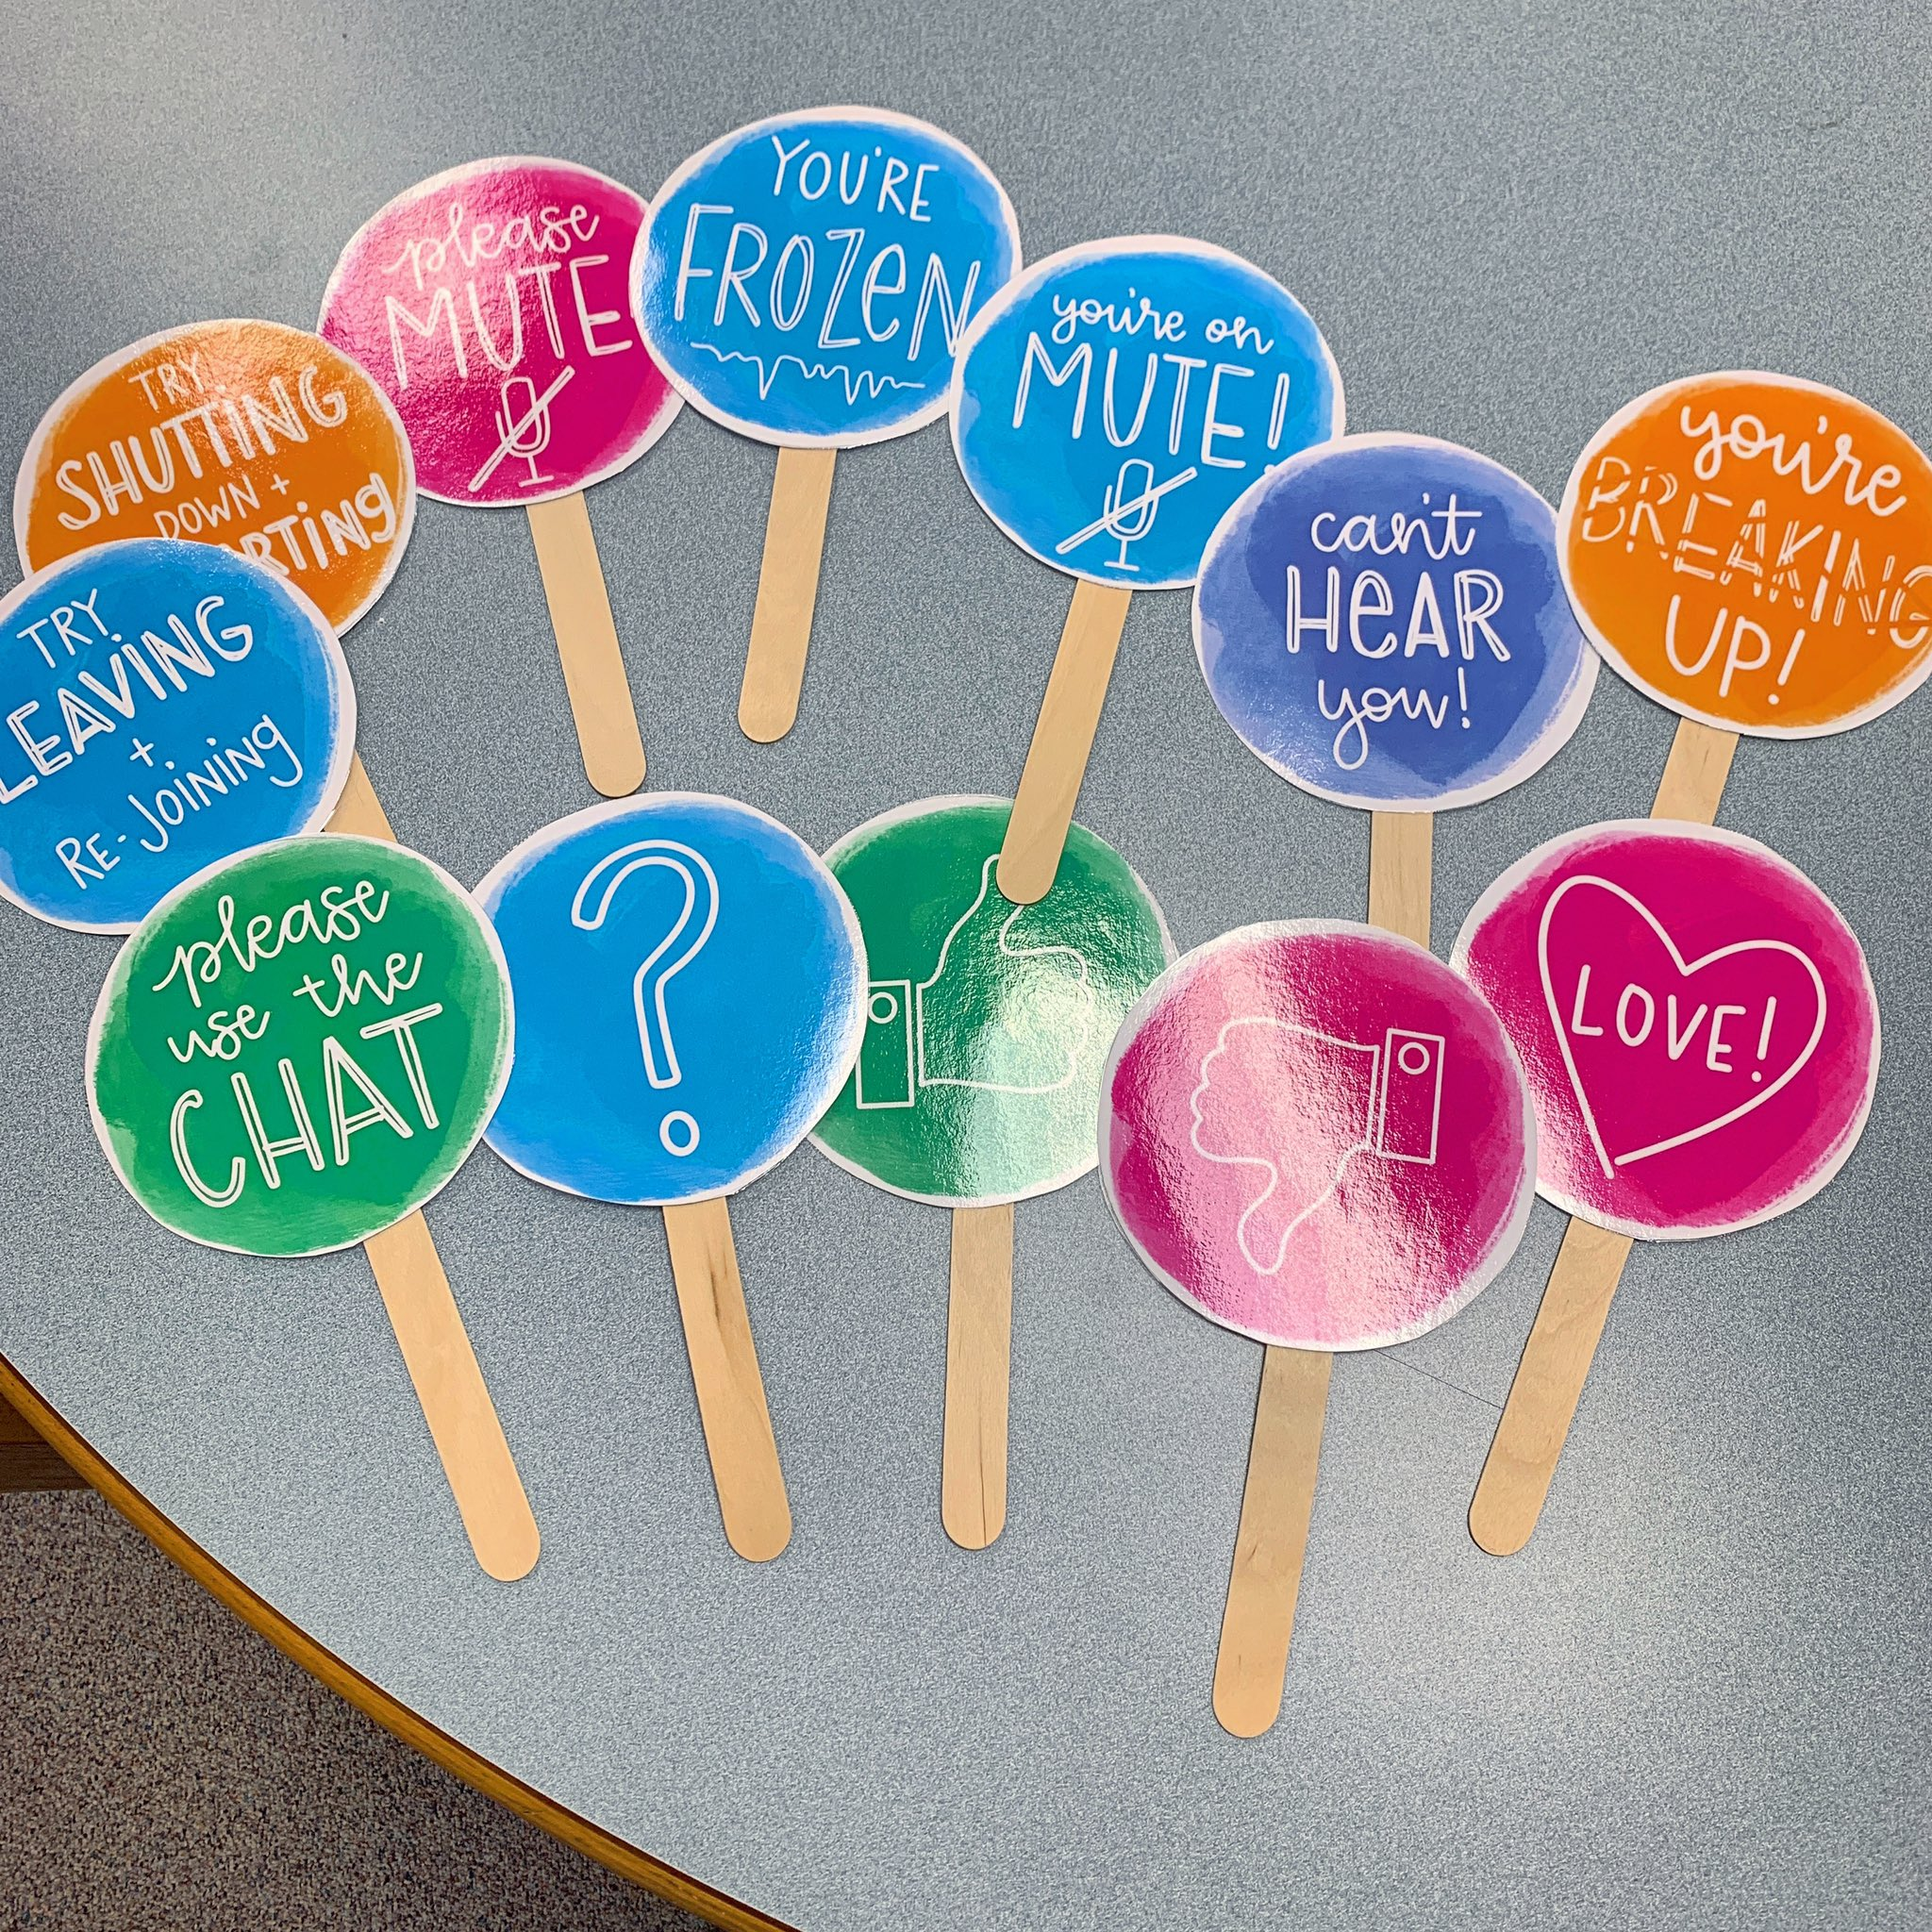 Circular signs printed out and attached to popsicle sticks